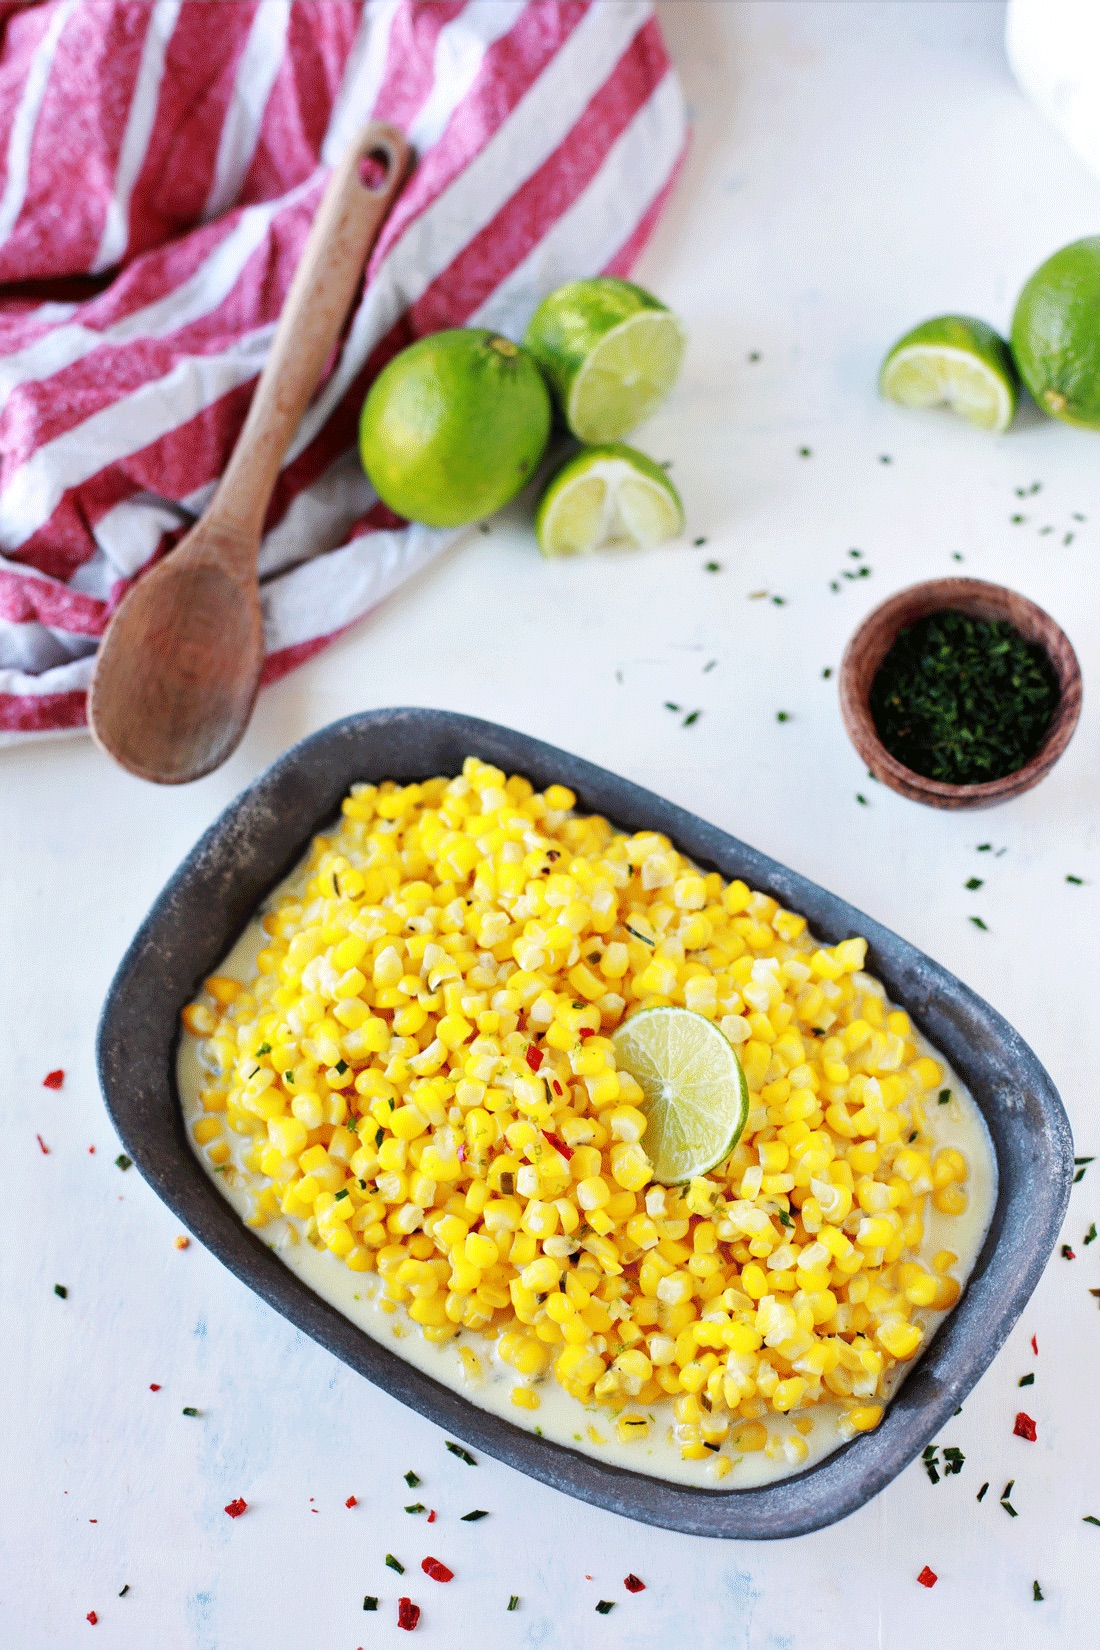 Creamed corn with lime.An easy recipe forcreamy delicious corn with justa hint of heat and citrus.